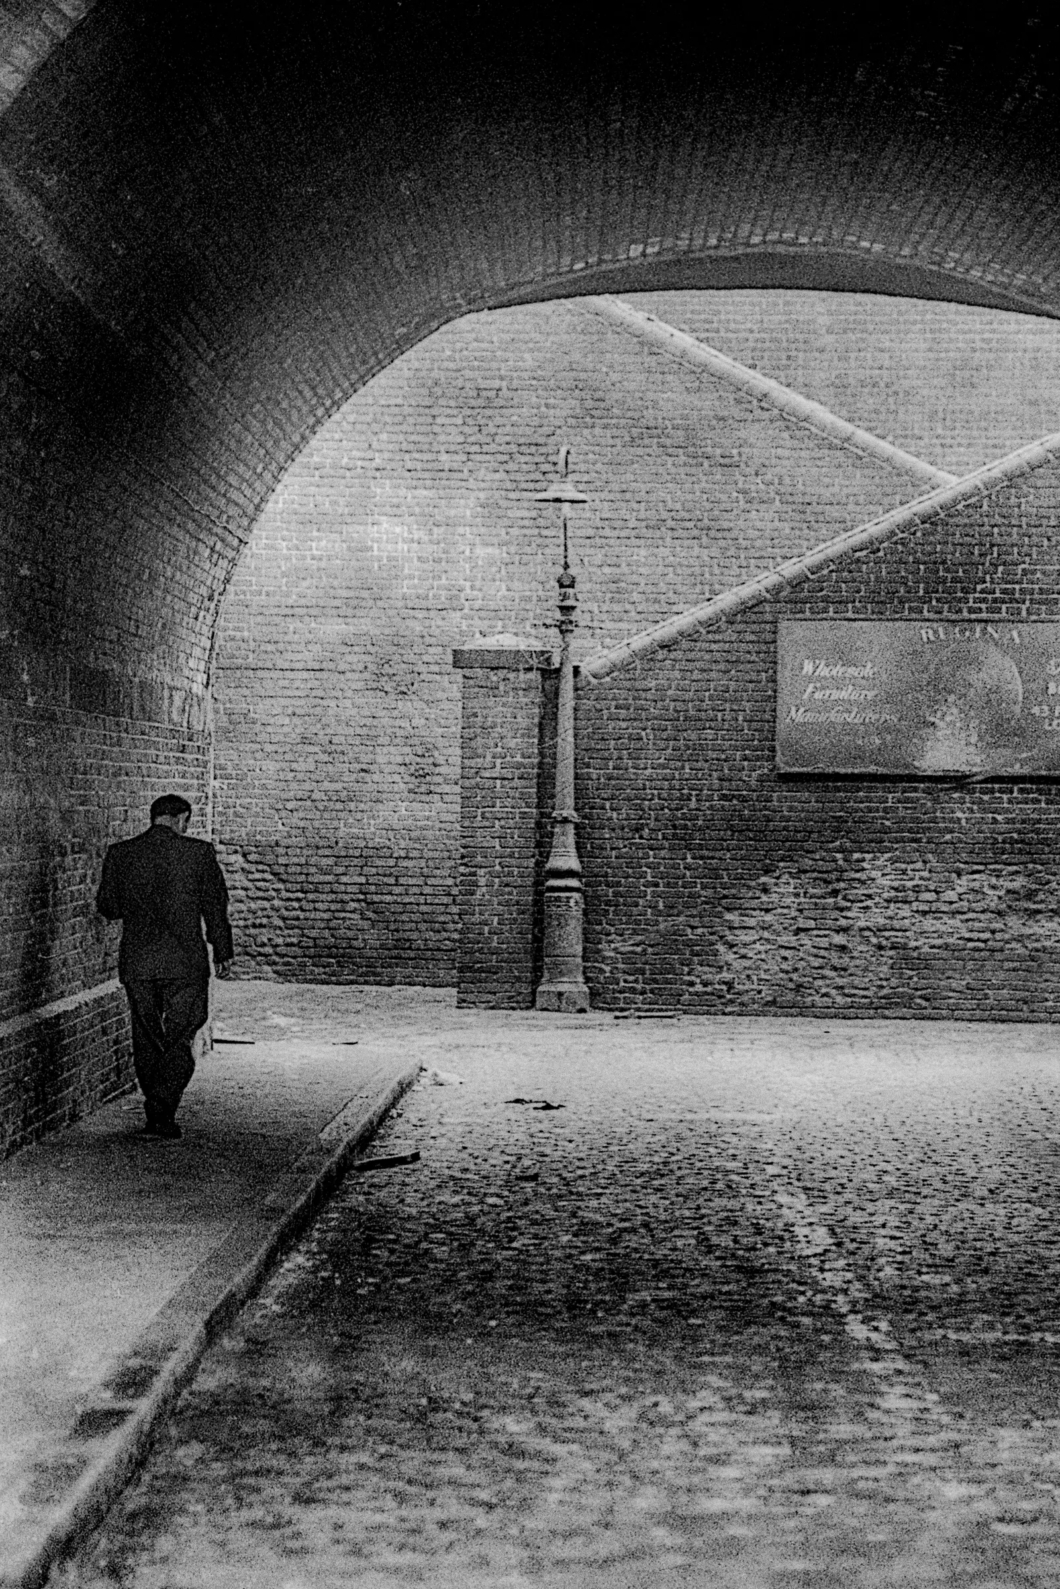 John Claridge The Street Lamp 1968